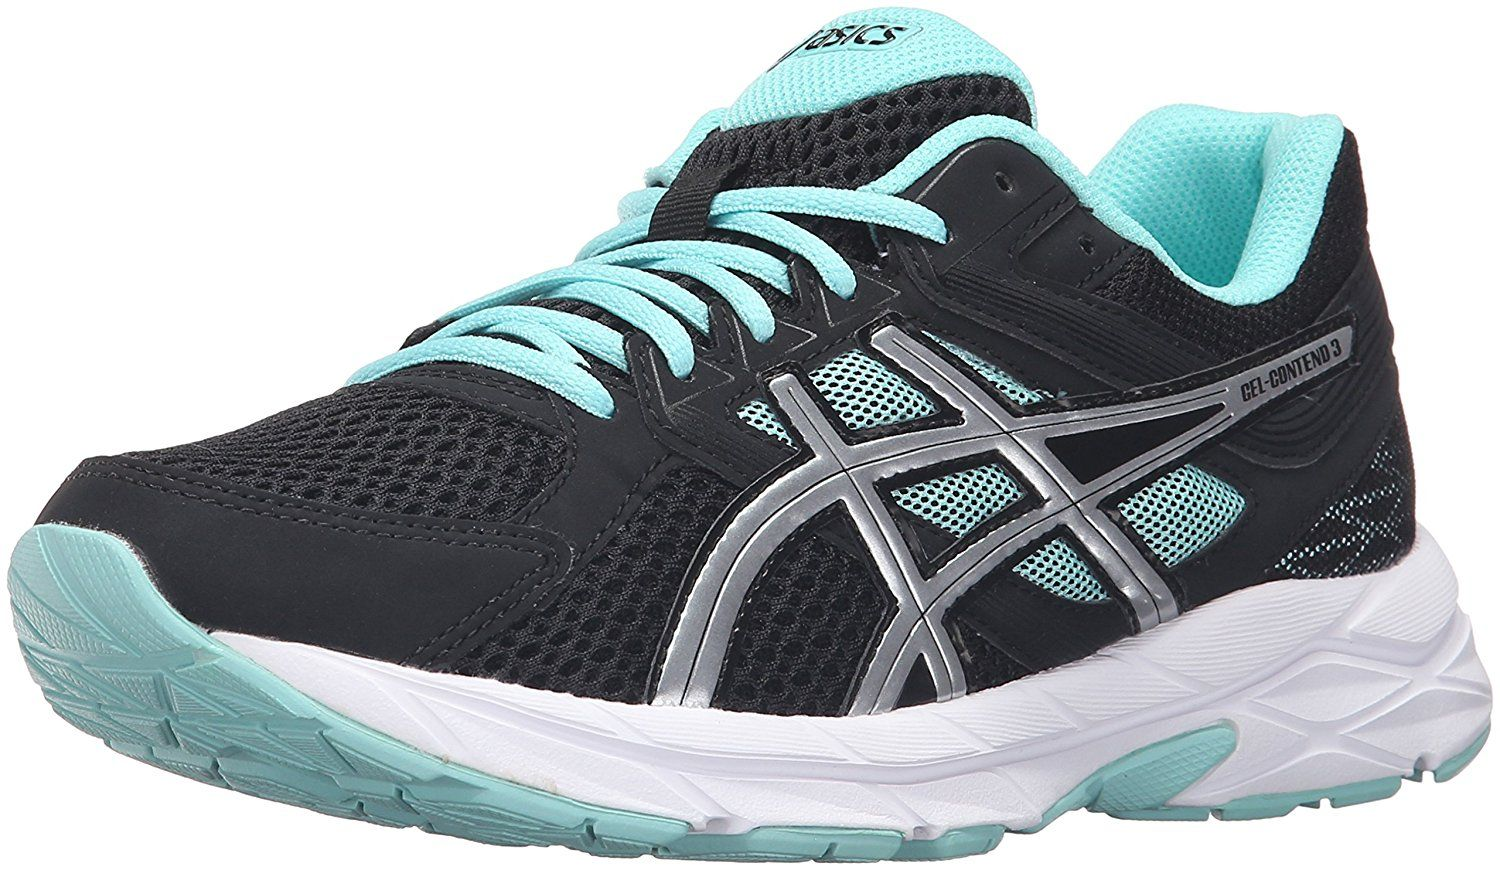 efd8a379c581f ASICS GEL-Contend 3 Running Shoe - One of the Best Running Shoe for Women